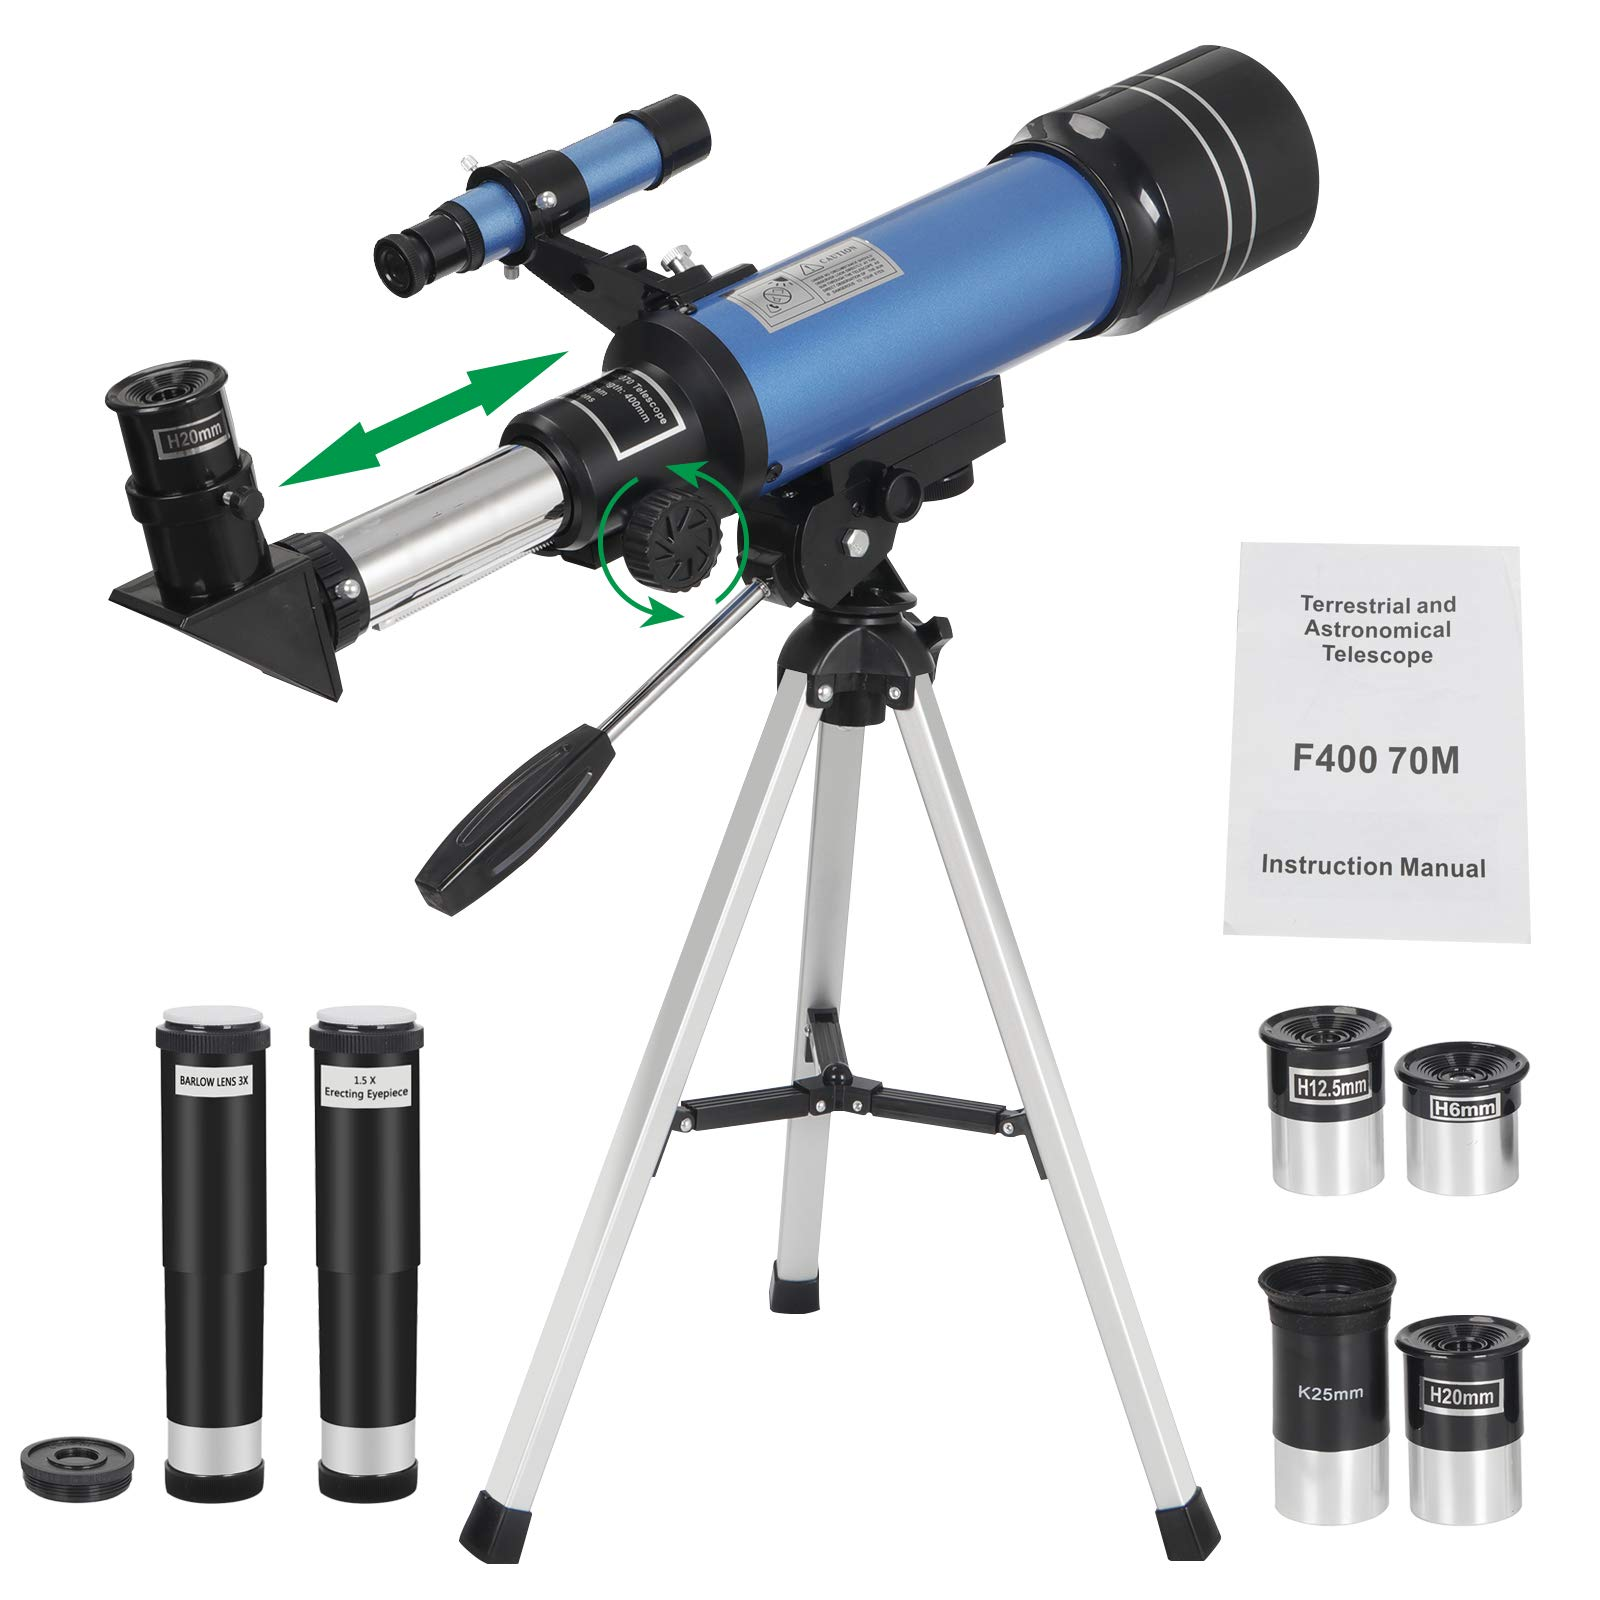 ZENY 70mm Refractor Telescope with Tripod & Finder Scope, 16X - 200X Magnification Travel Scope with 3 Magnification eyepieces & Moon Mirror Portable Telescope for Kids & Astronomy Beginners